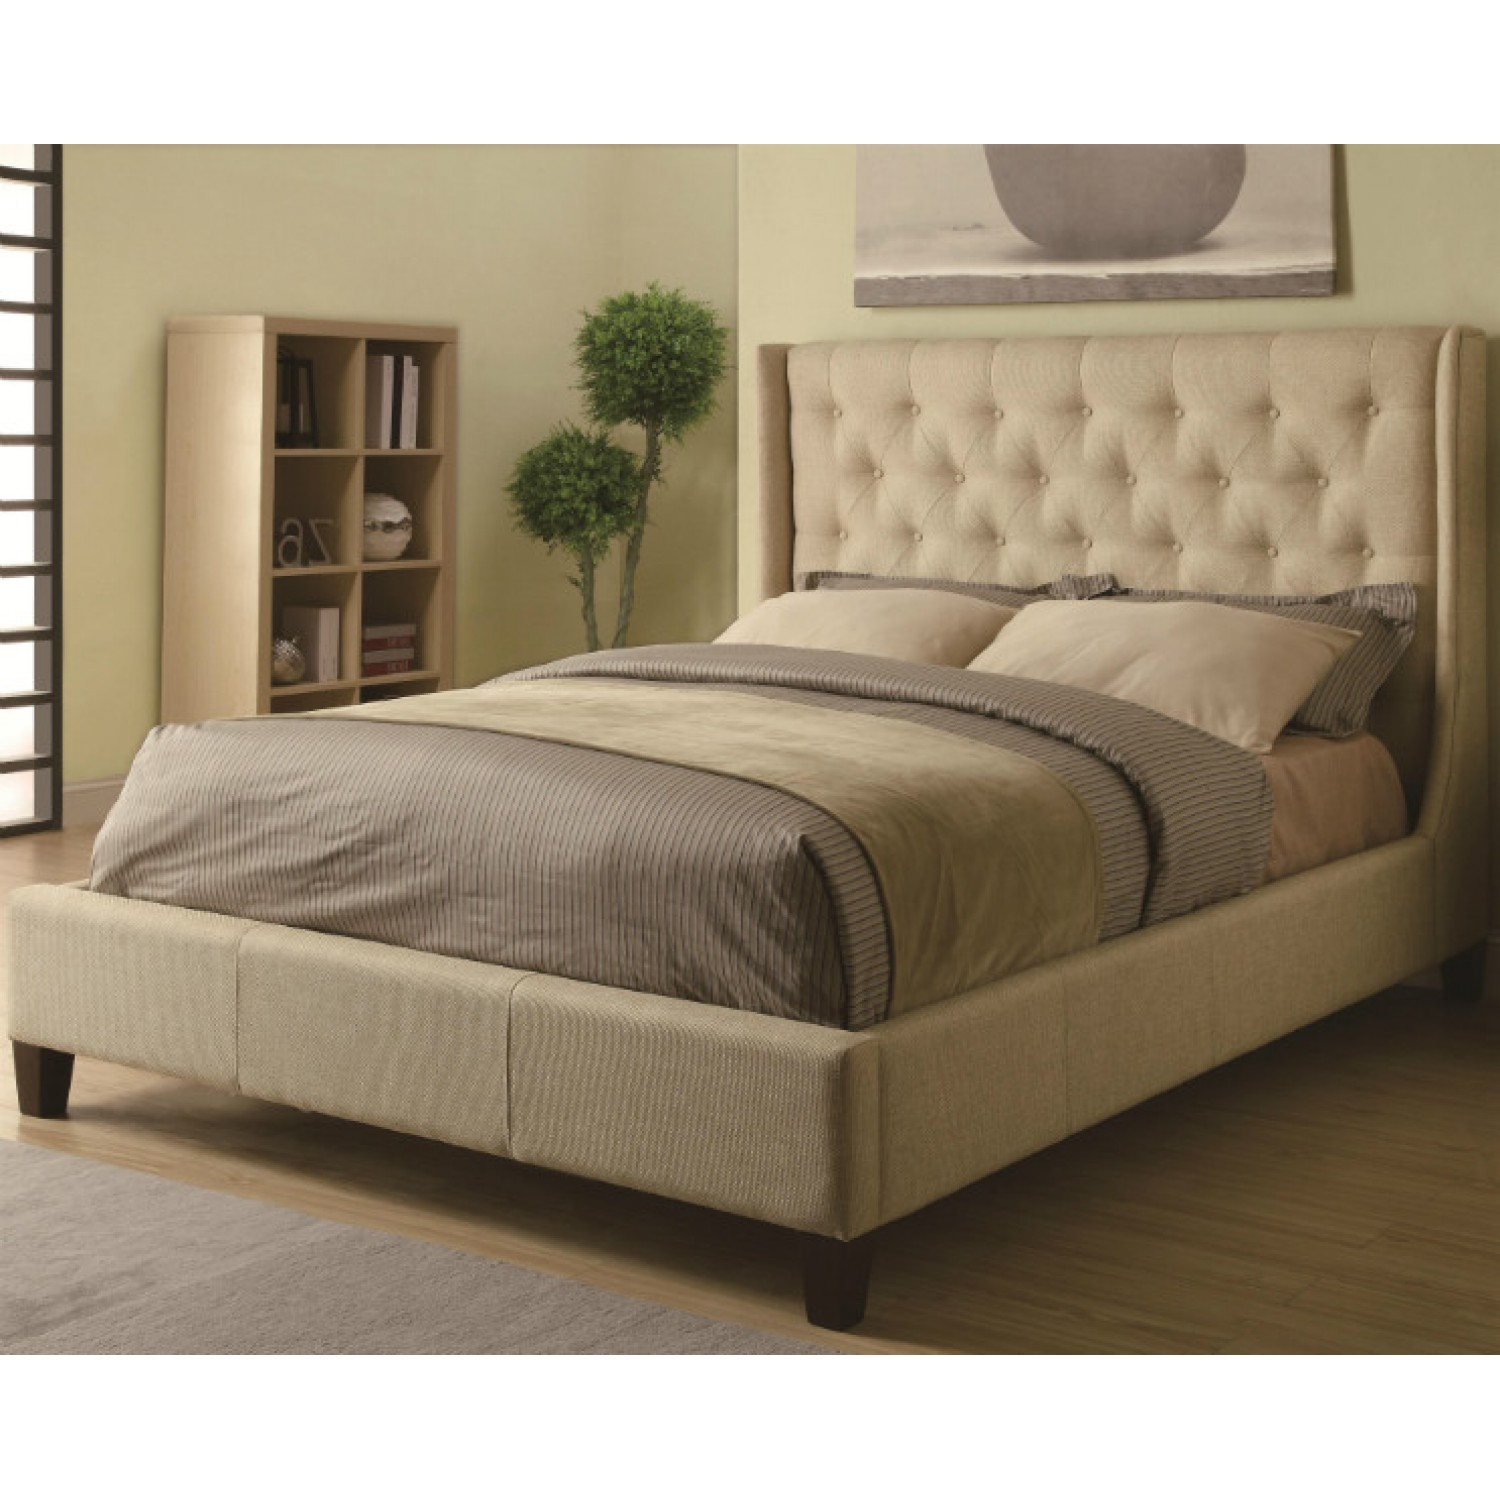 Bed Frame With Headboard